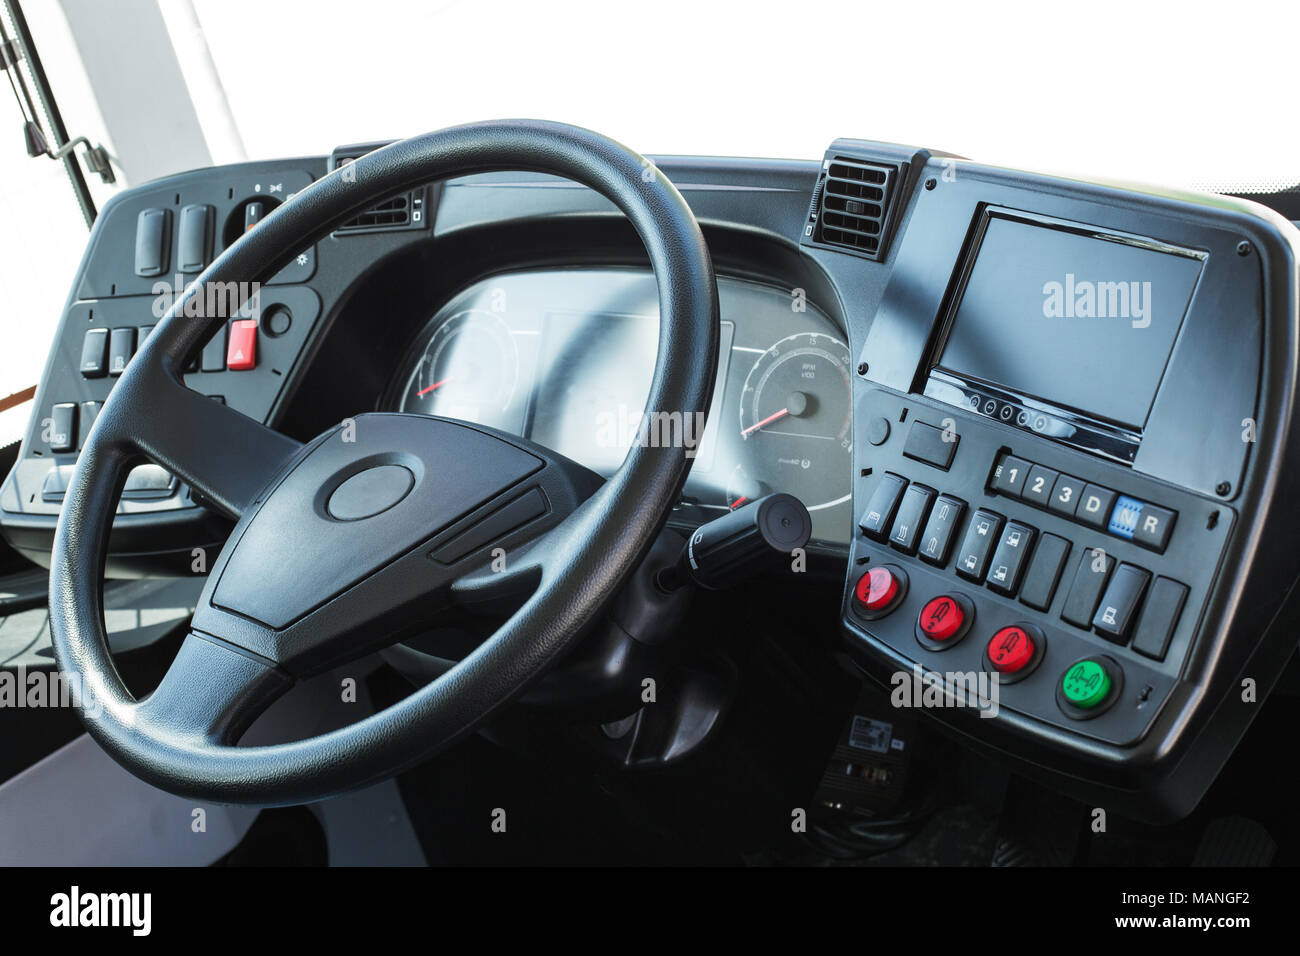 Modern automobile control panel. Dashboard with navigation of an autobus. - Stock Image